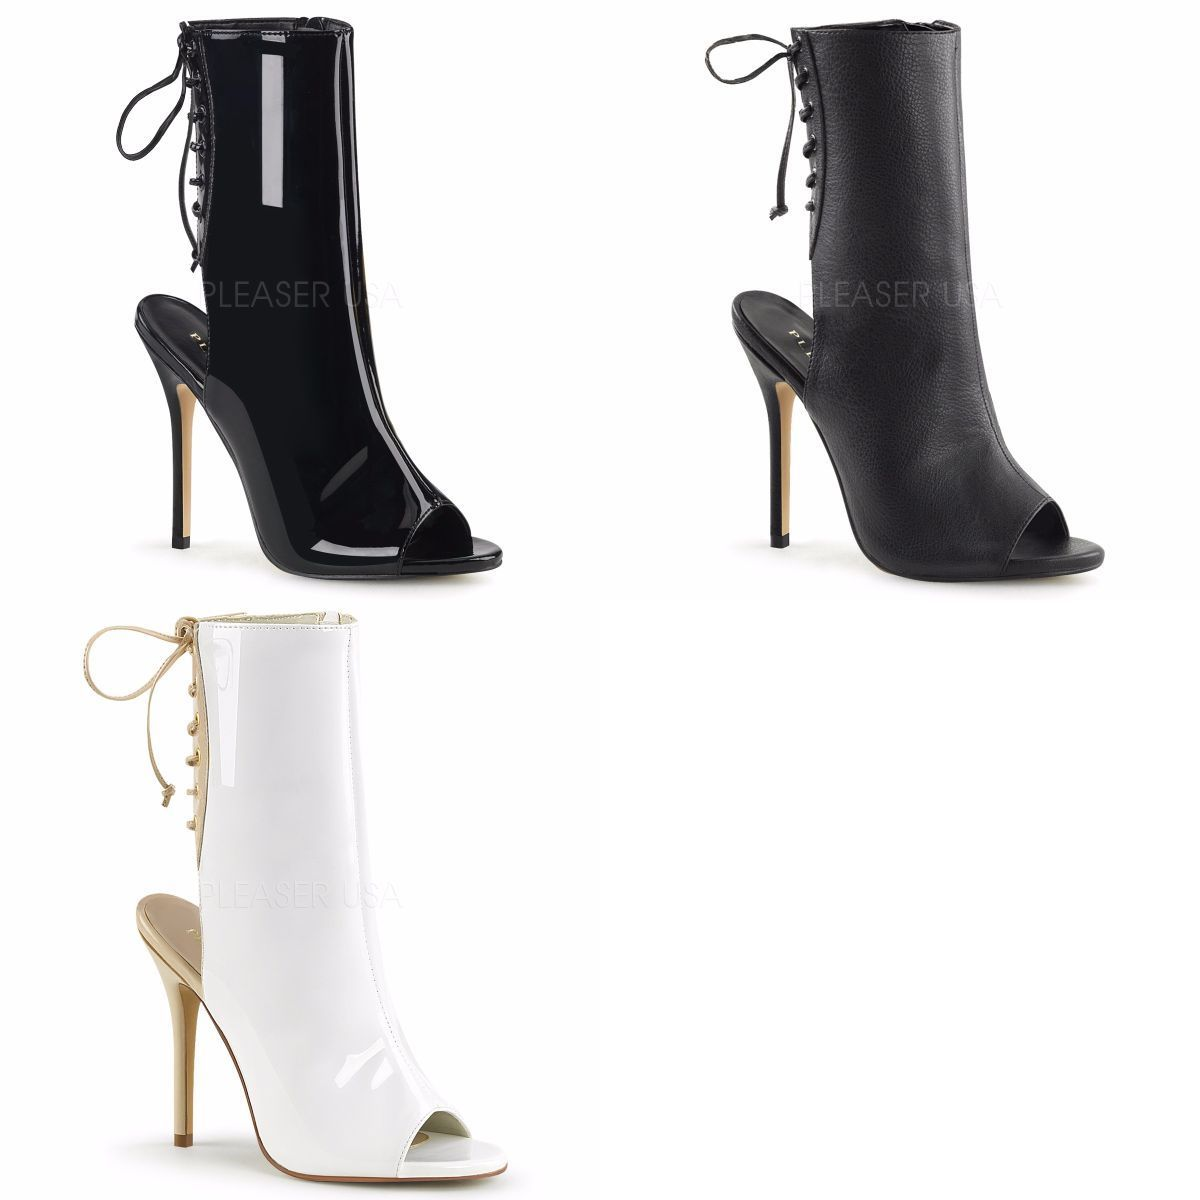 Open Heel Ankle Pleaser Amuse Discontinued Toe Lace Back Boots Up 1018 LUjGpqSzMV